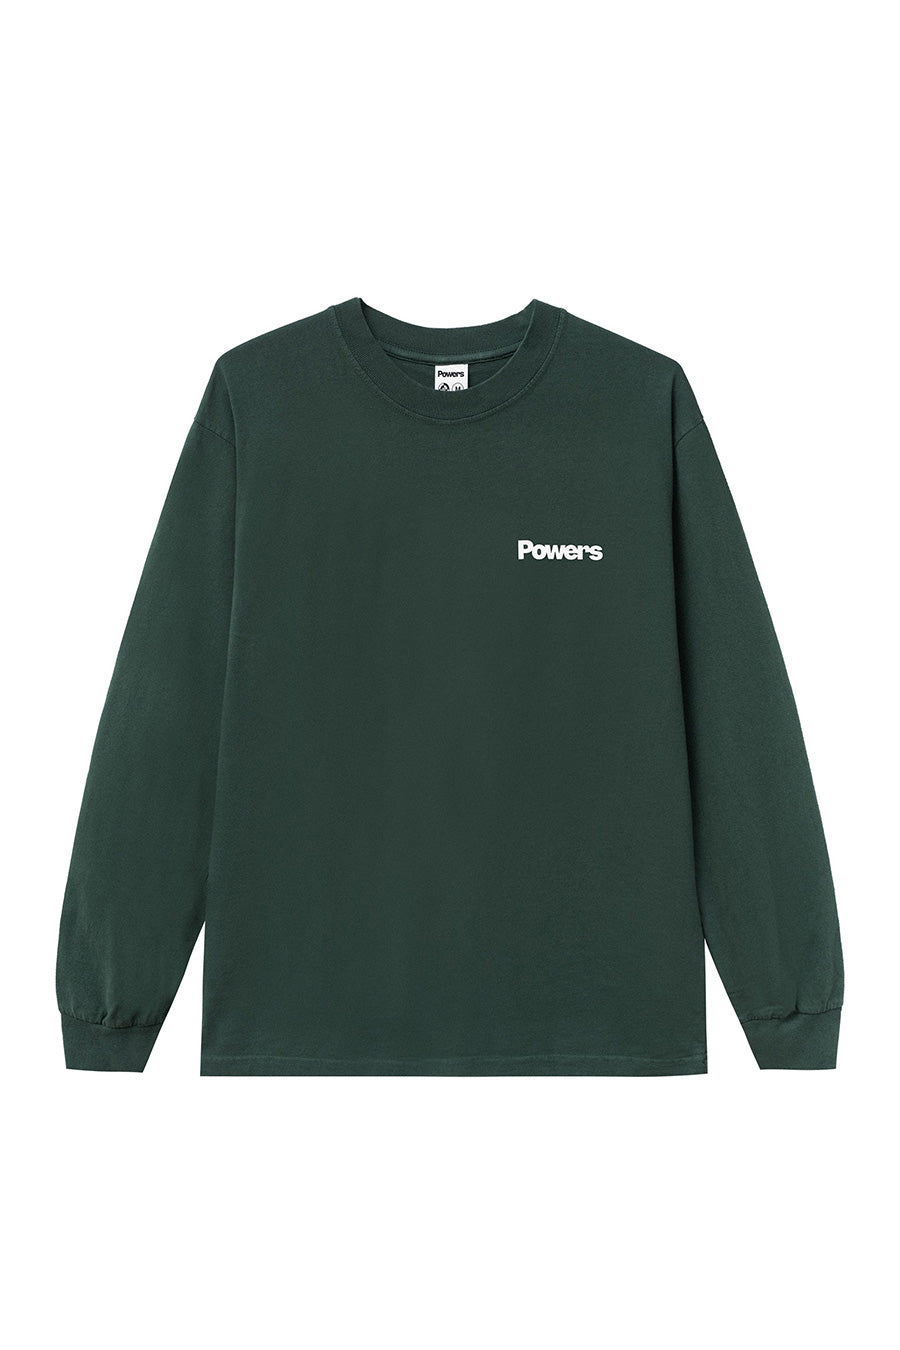 Powers Supply - Green Get a Grip Shop Long Sleeve T-Shirt | 1032 SPACE